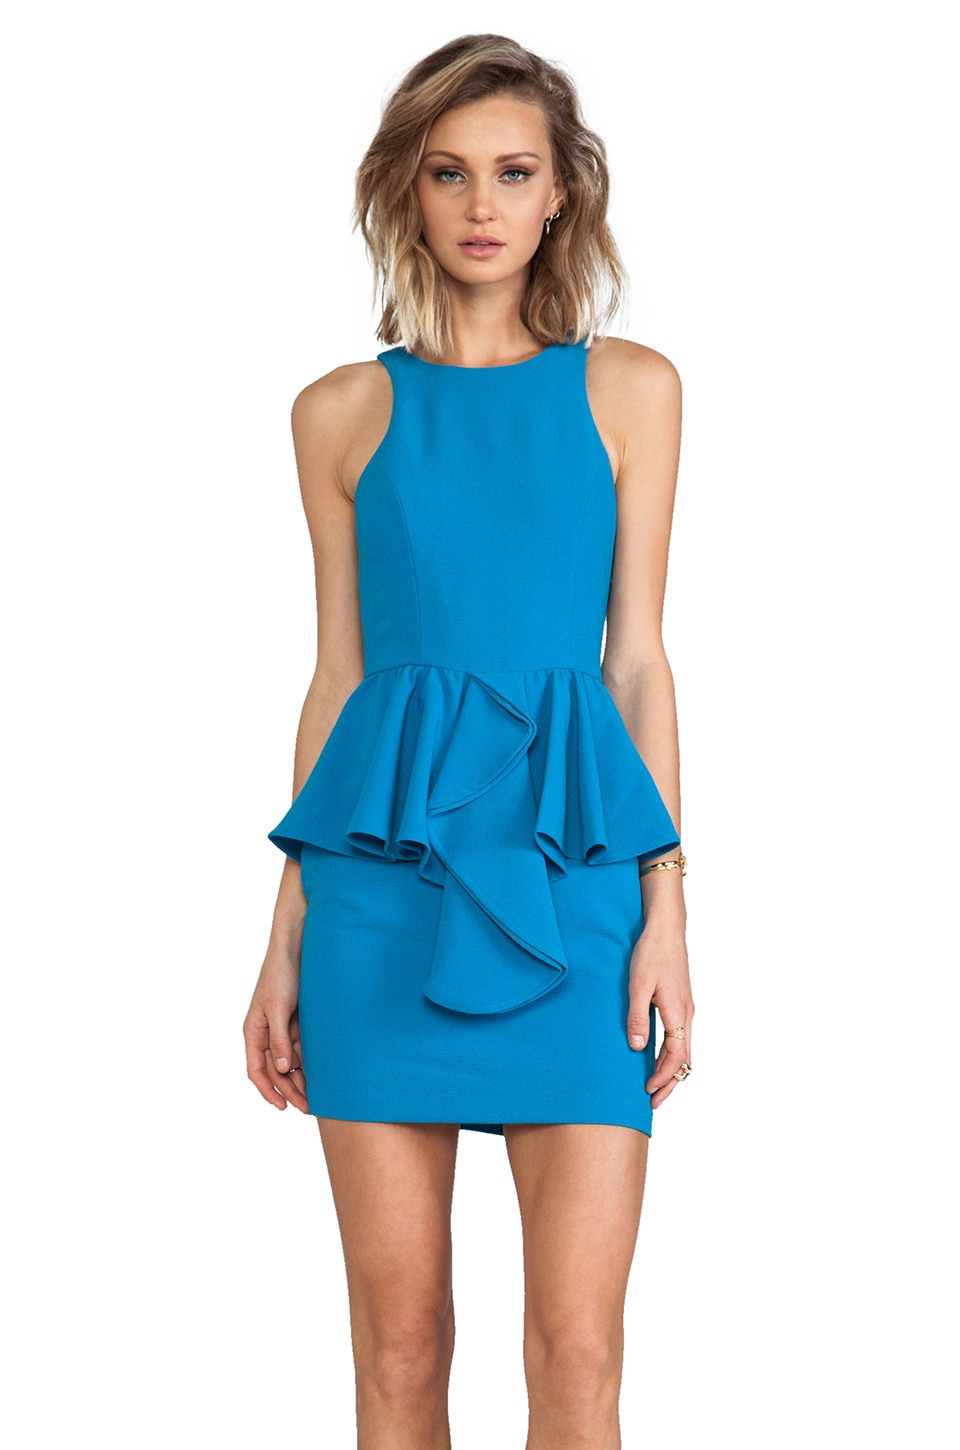 Talulah The Jasper Crystal Dress in Blue